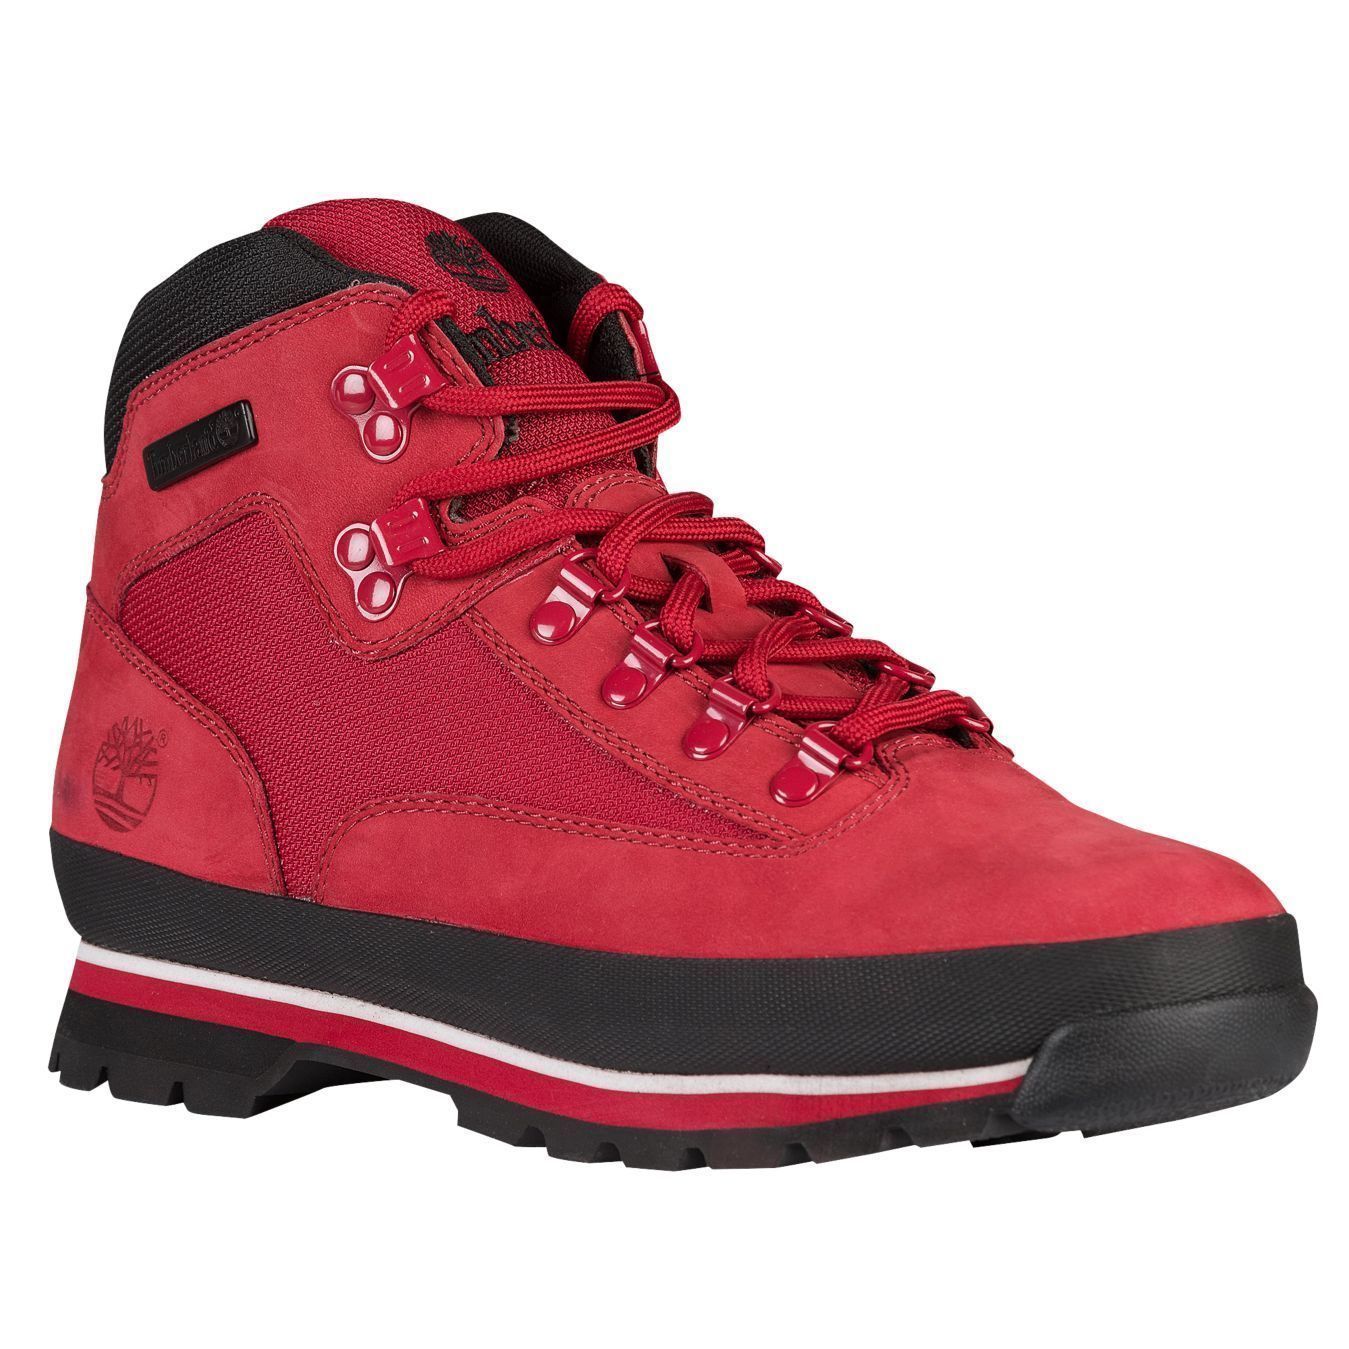 Mens Timberland Euro Hiker Classic Hiking Boots New, Red / Black A14Y2